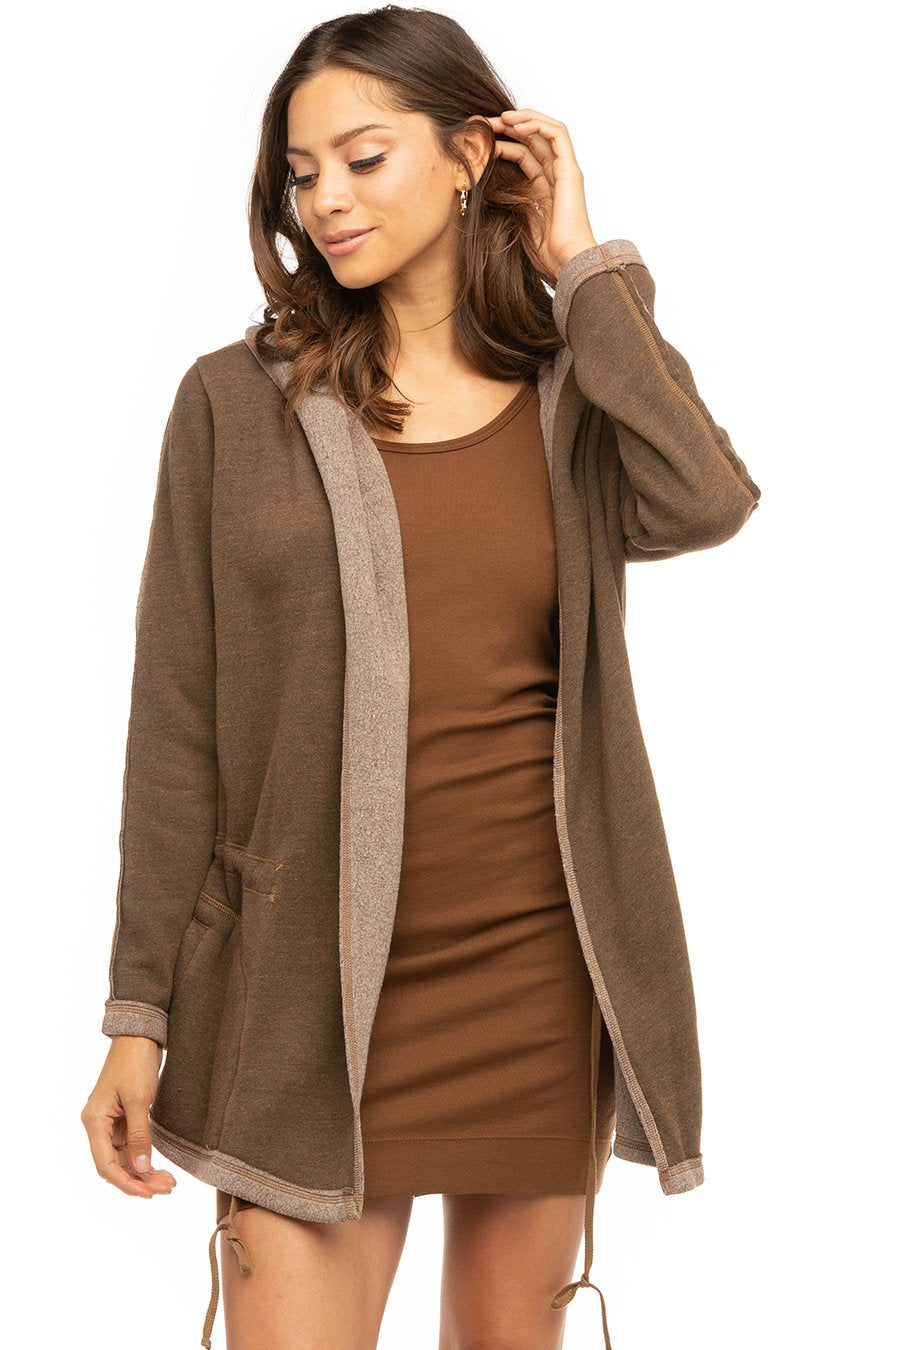 Hard Tail Forever Cozy Anorak Jacket - Cognac - S